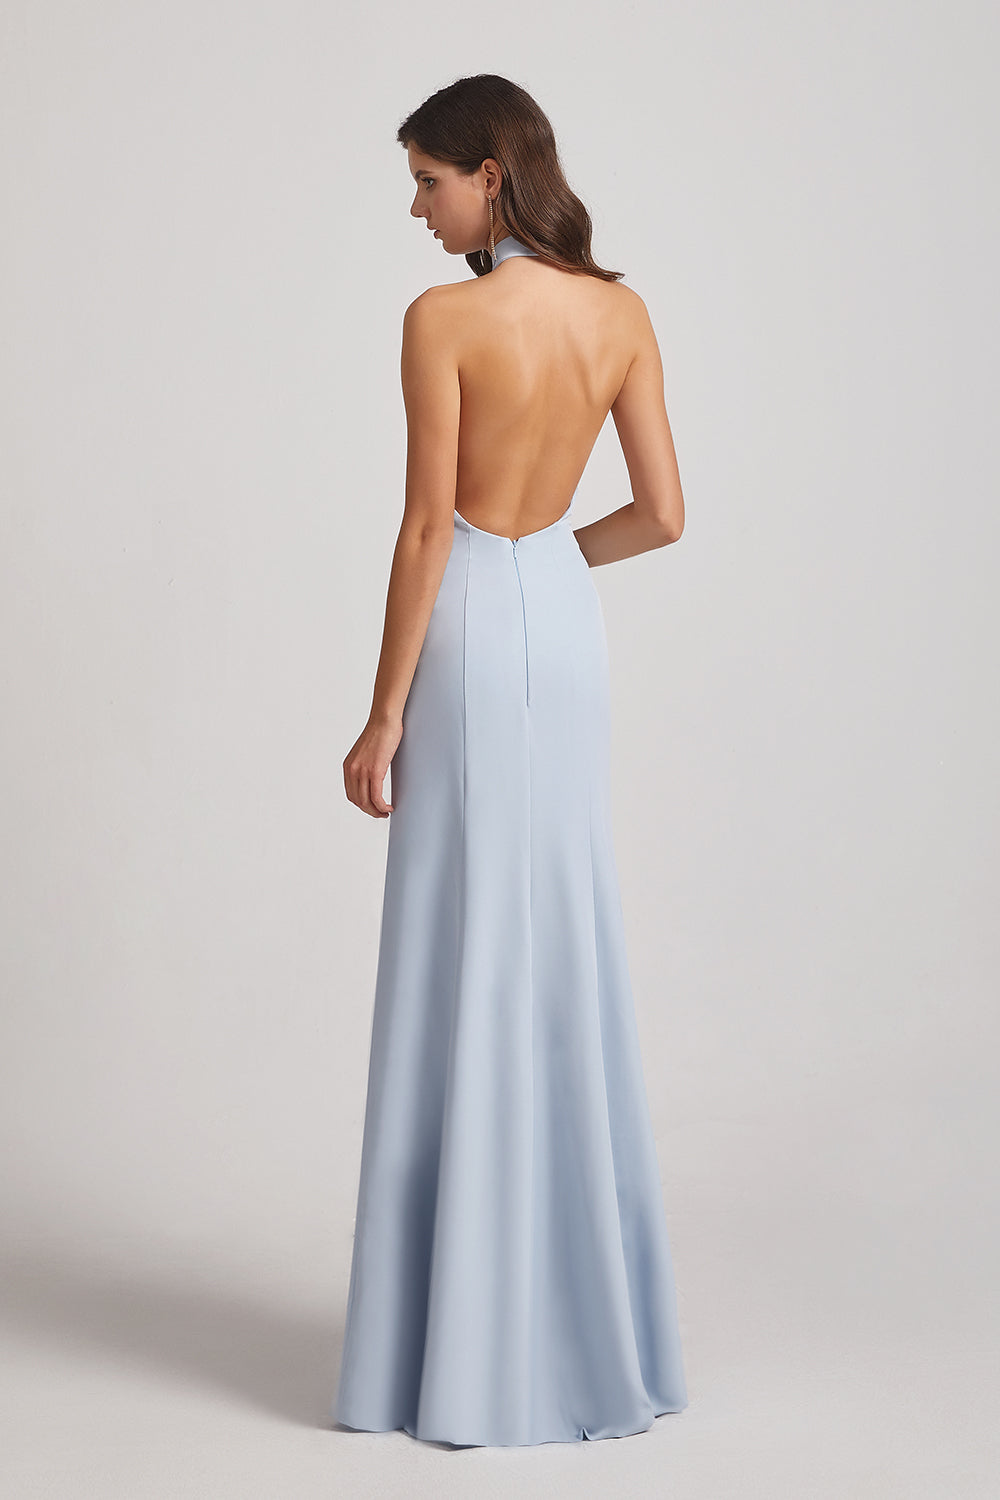 Backless High Neck Halter Bridesmaid Dresses